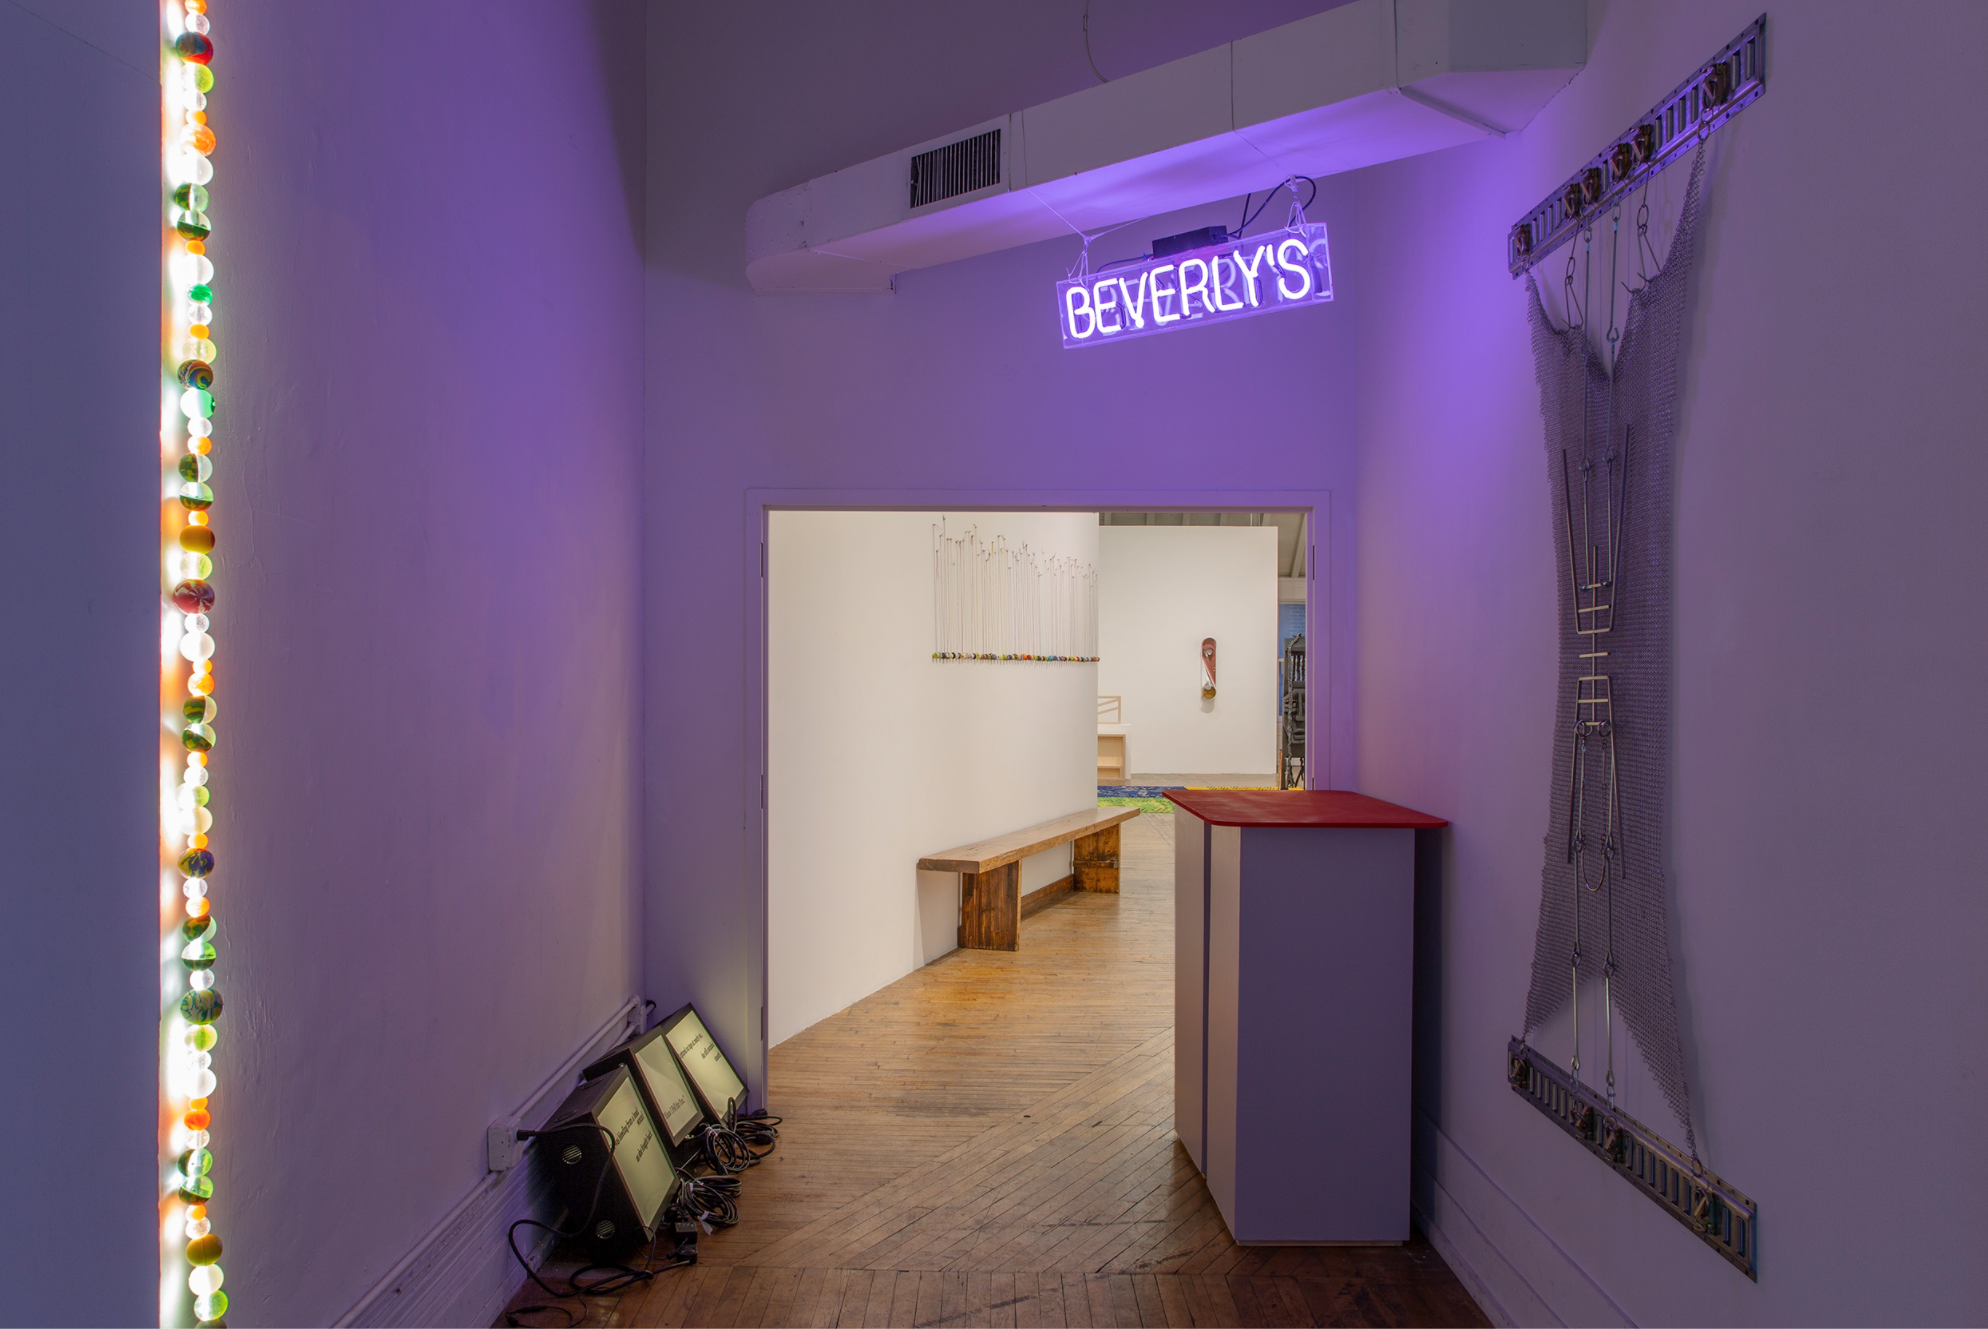 photo of the gallery space, neon sign above doorway that says Beverly's